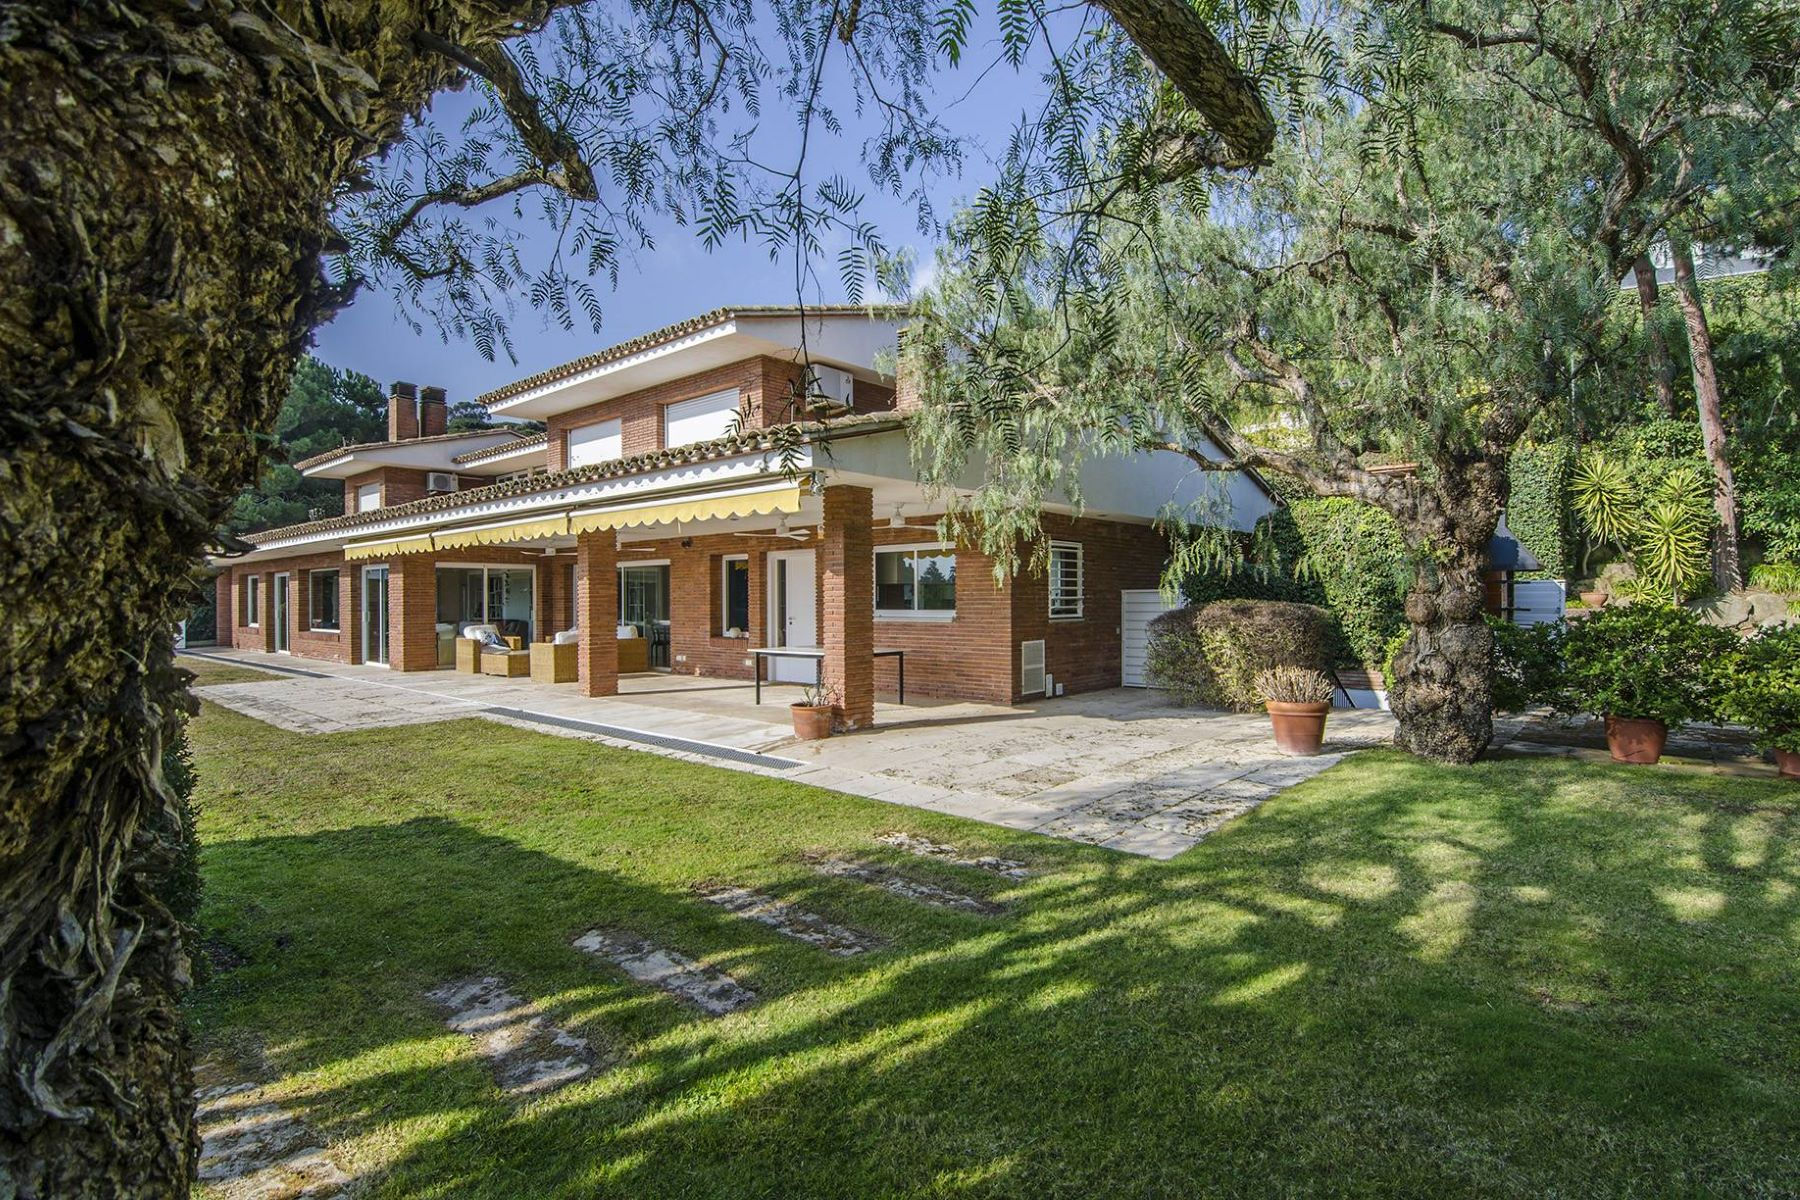 Maison unifamiliale pour l Vente à Luxury and Privacy in Supermaresme Sant Andreu De Llavaneres, Barcelona, 08392 Espagne